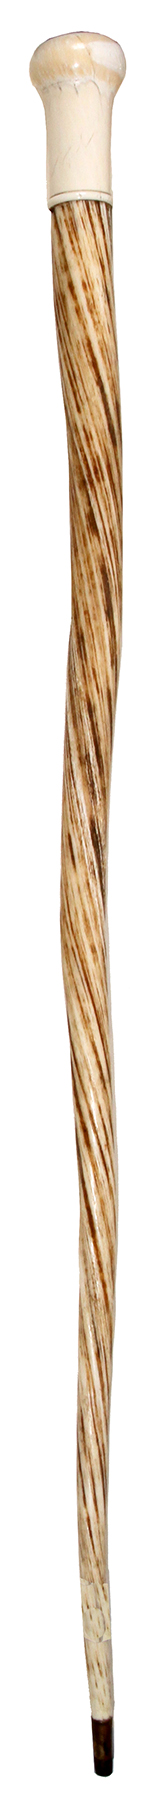 Henry Marder Estate Cane Absolute Auction - 25.jpg